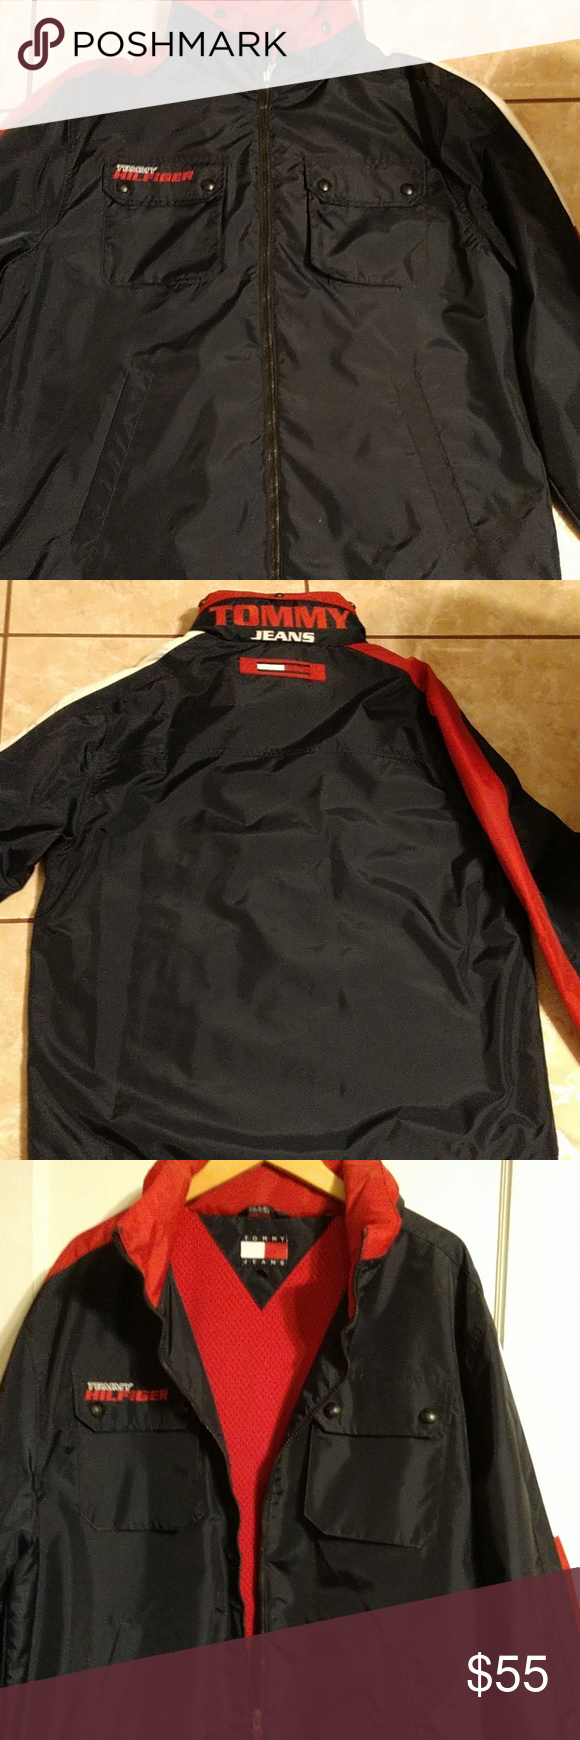 Mens jacket lightweight size largeice firm wind breaker tommy